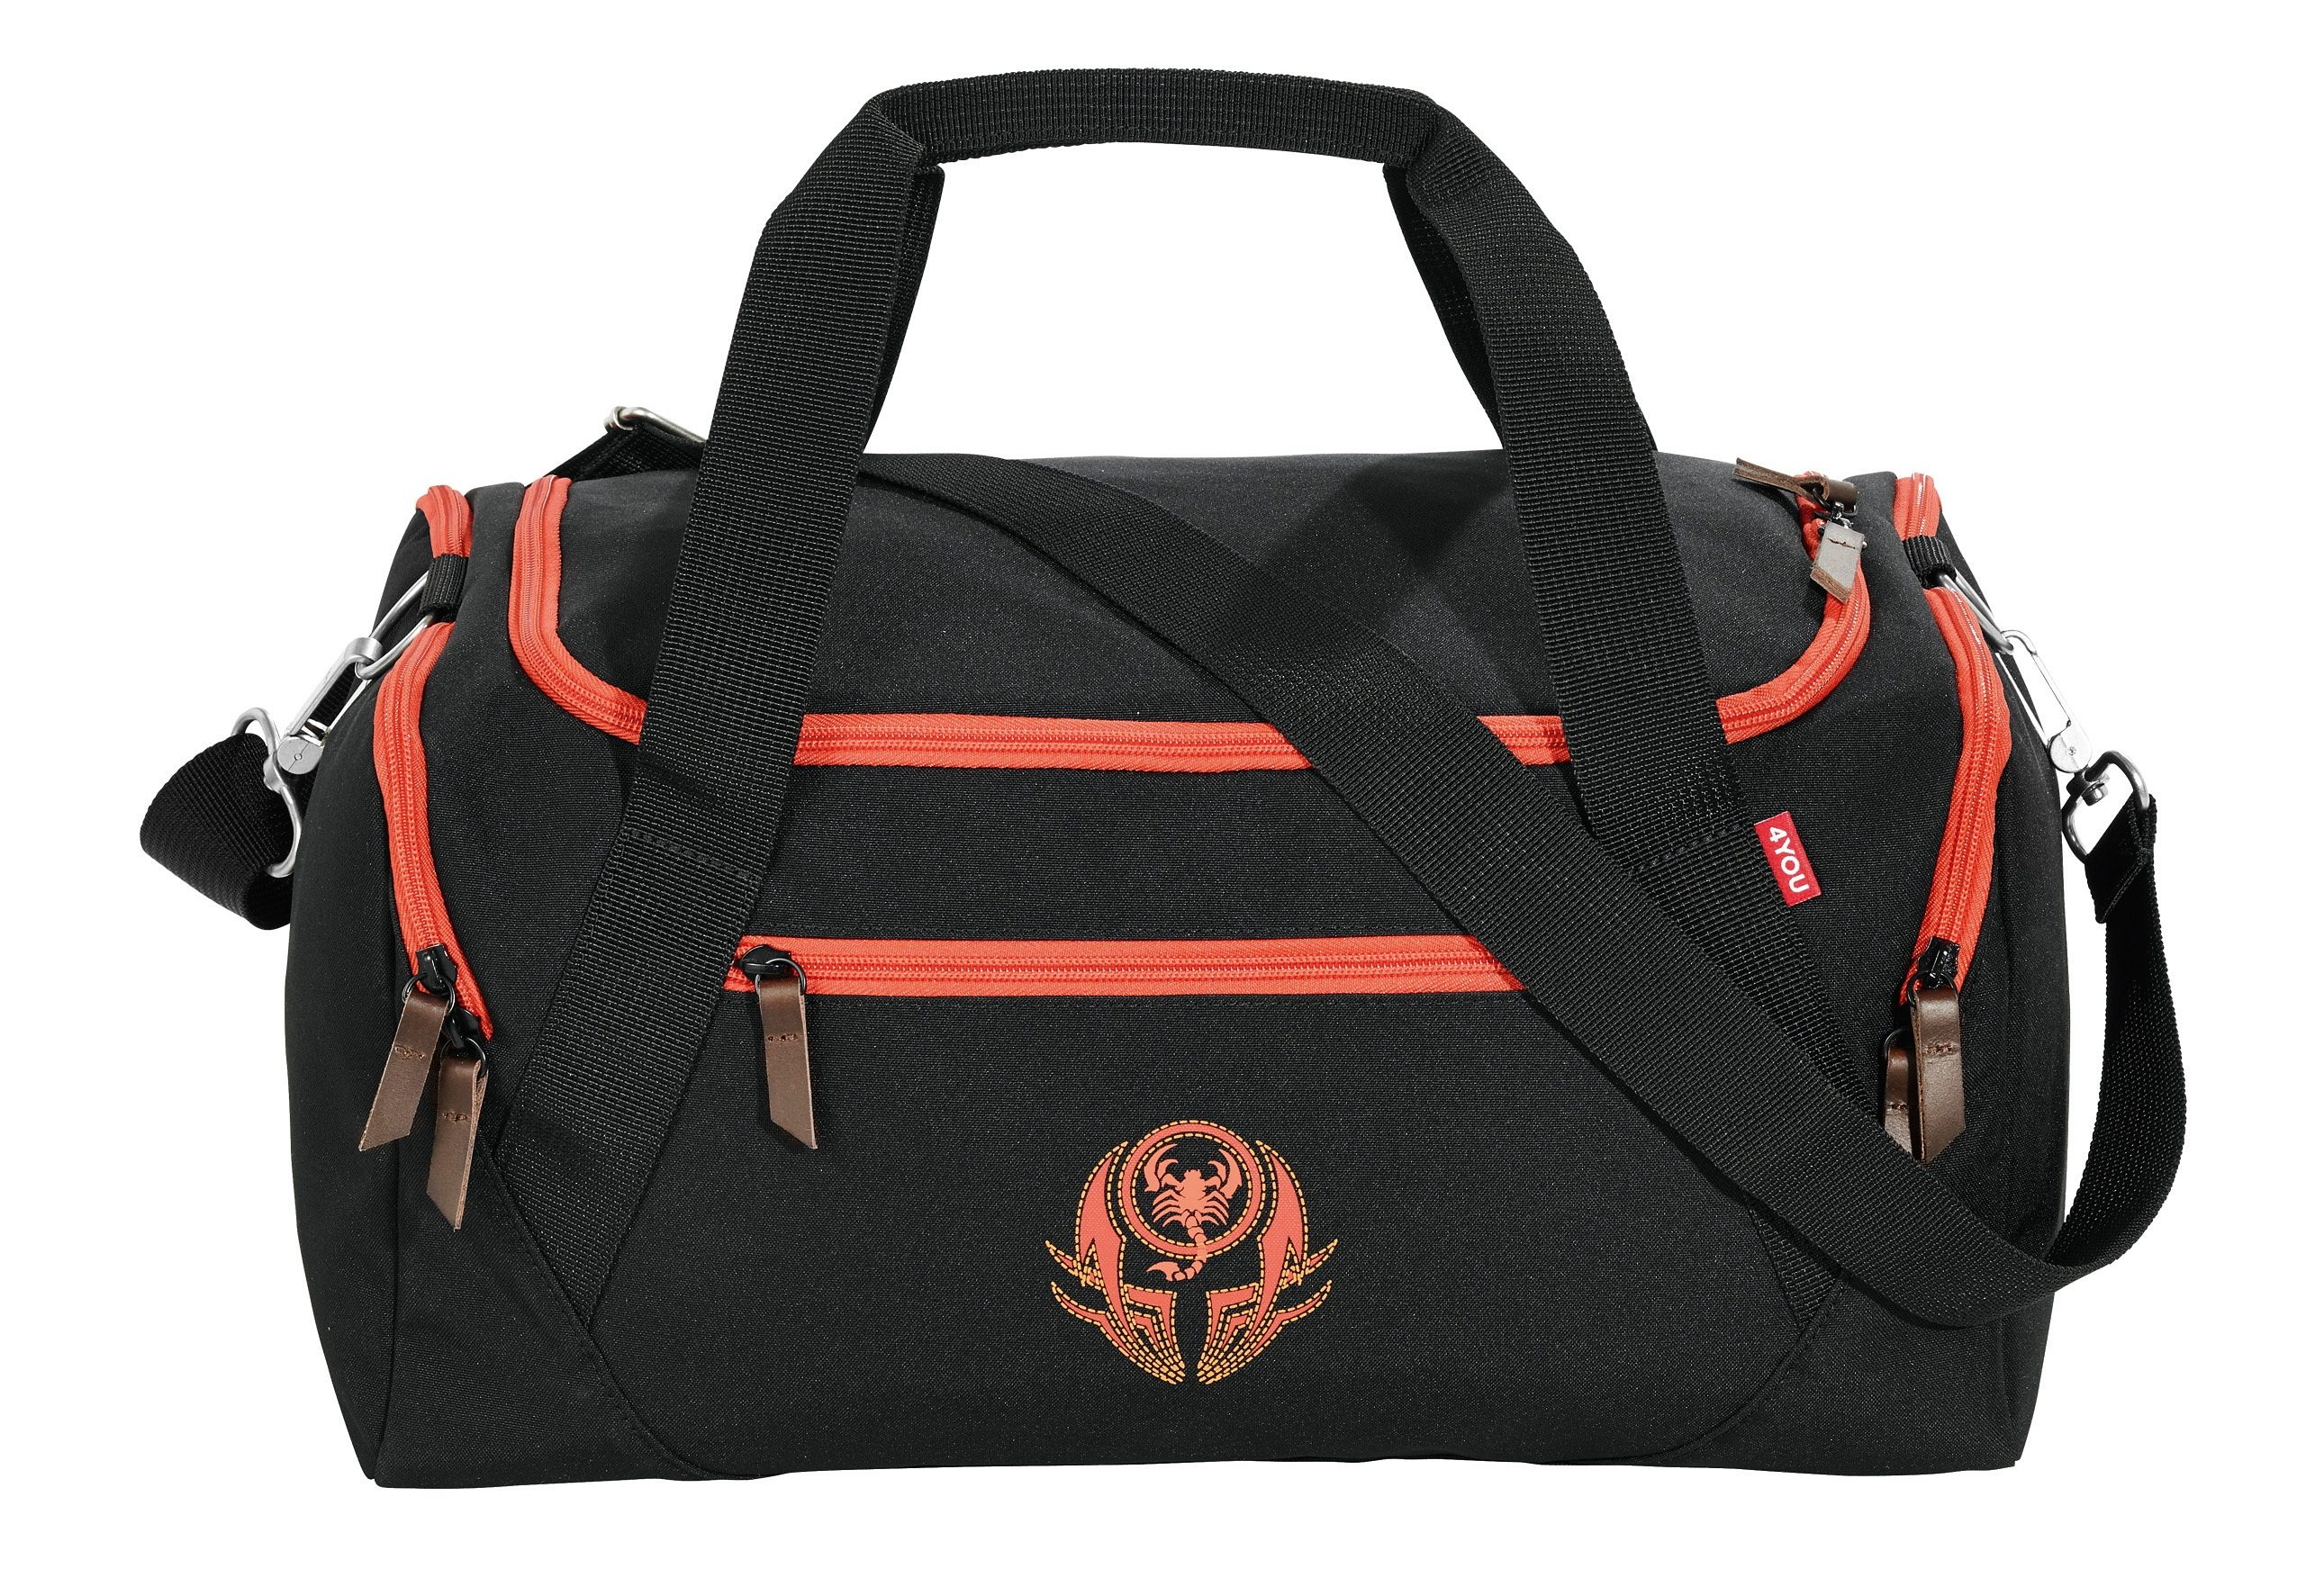 4YOU Sporttasche, Scorpio, »Sportbag«